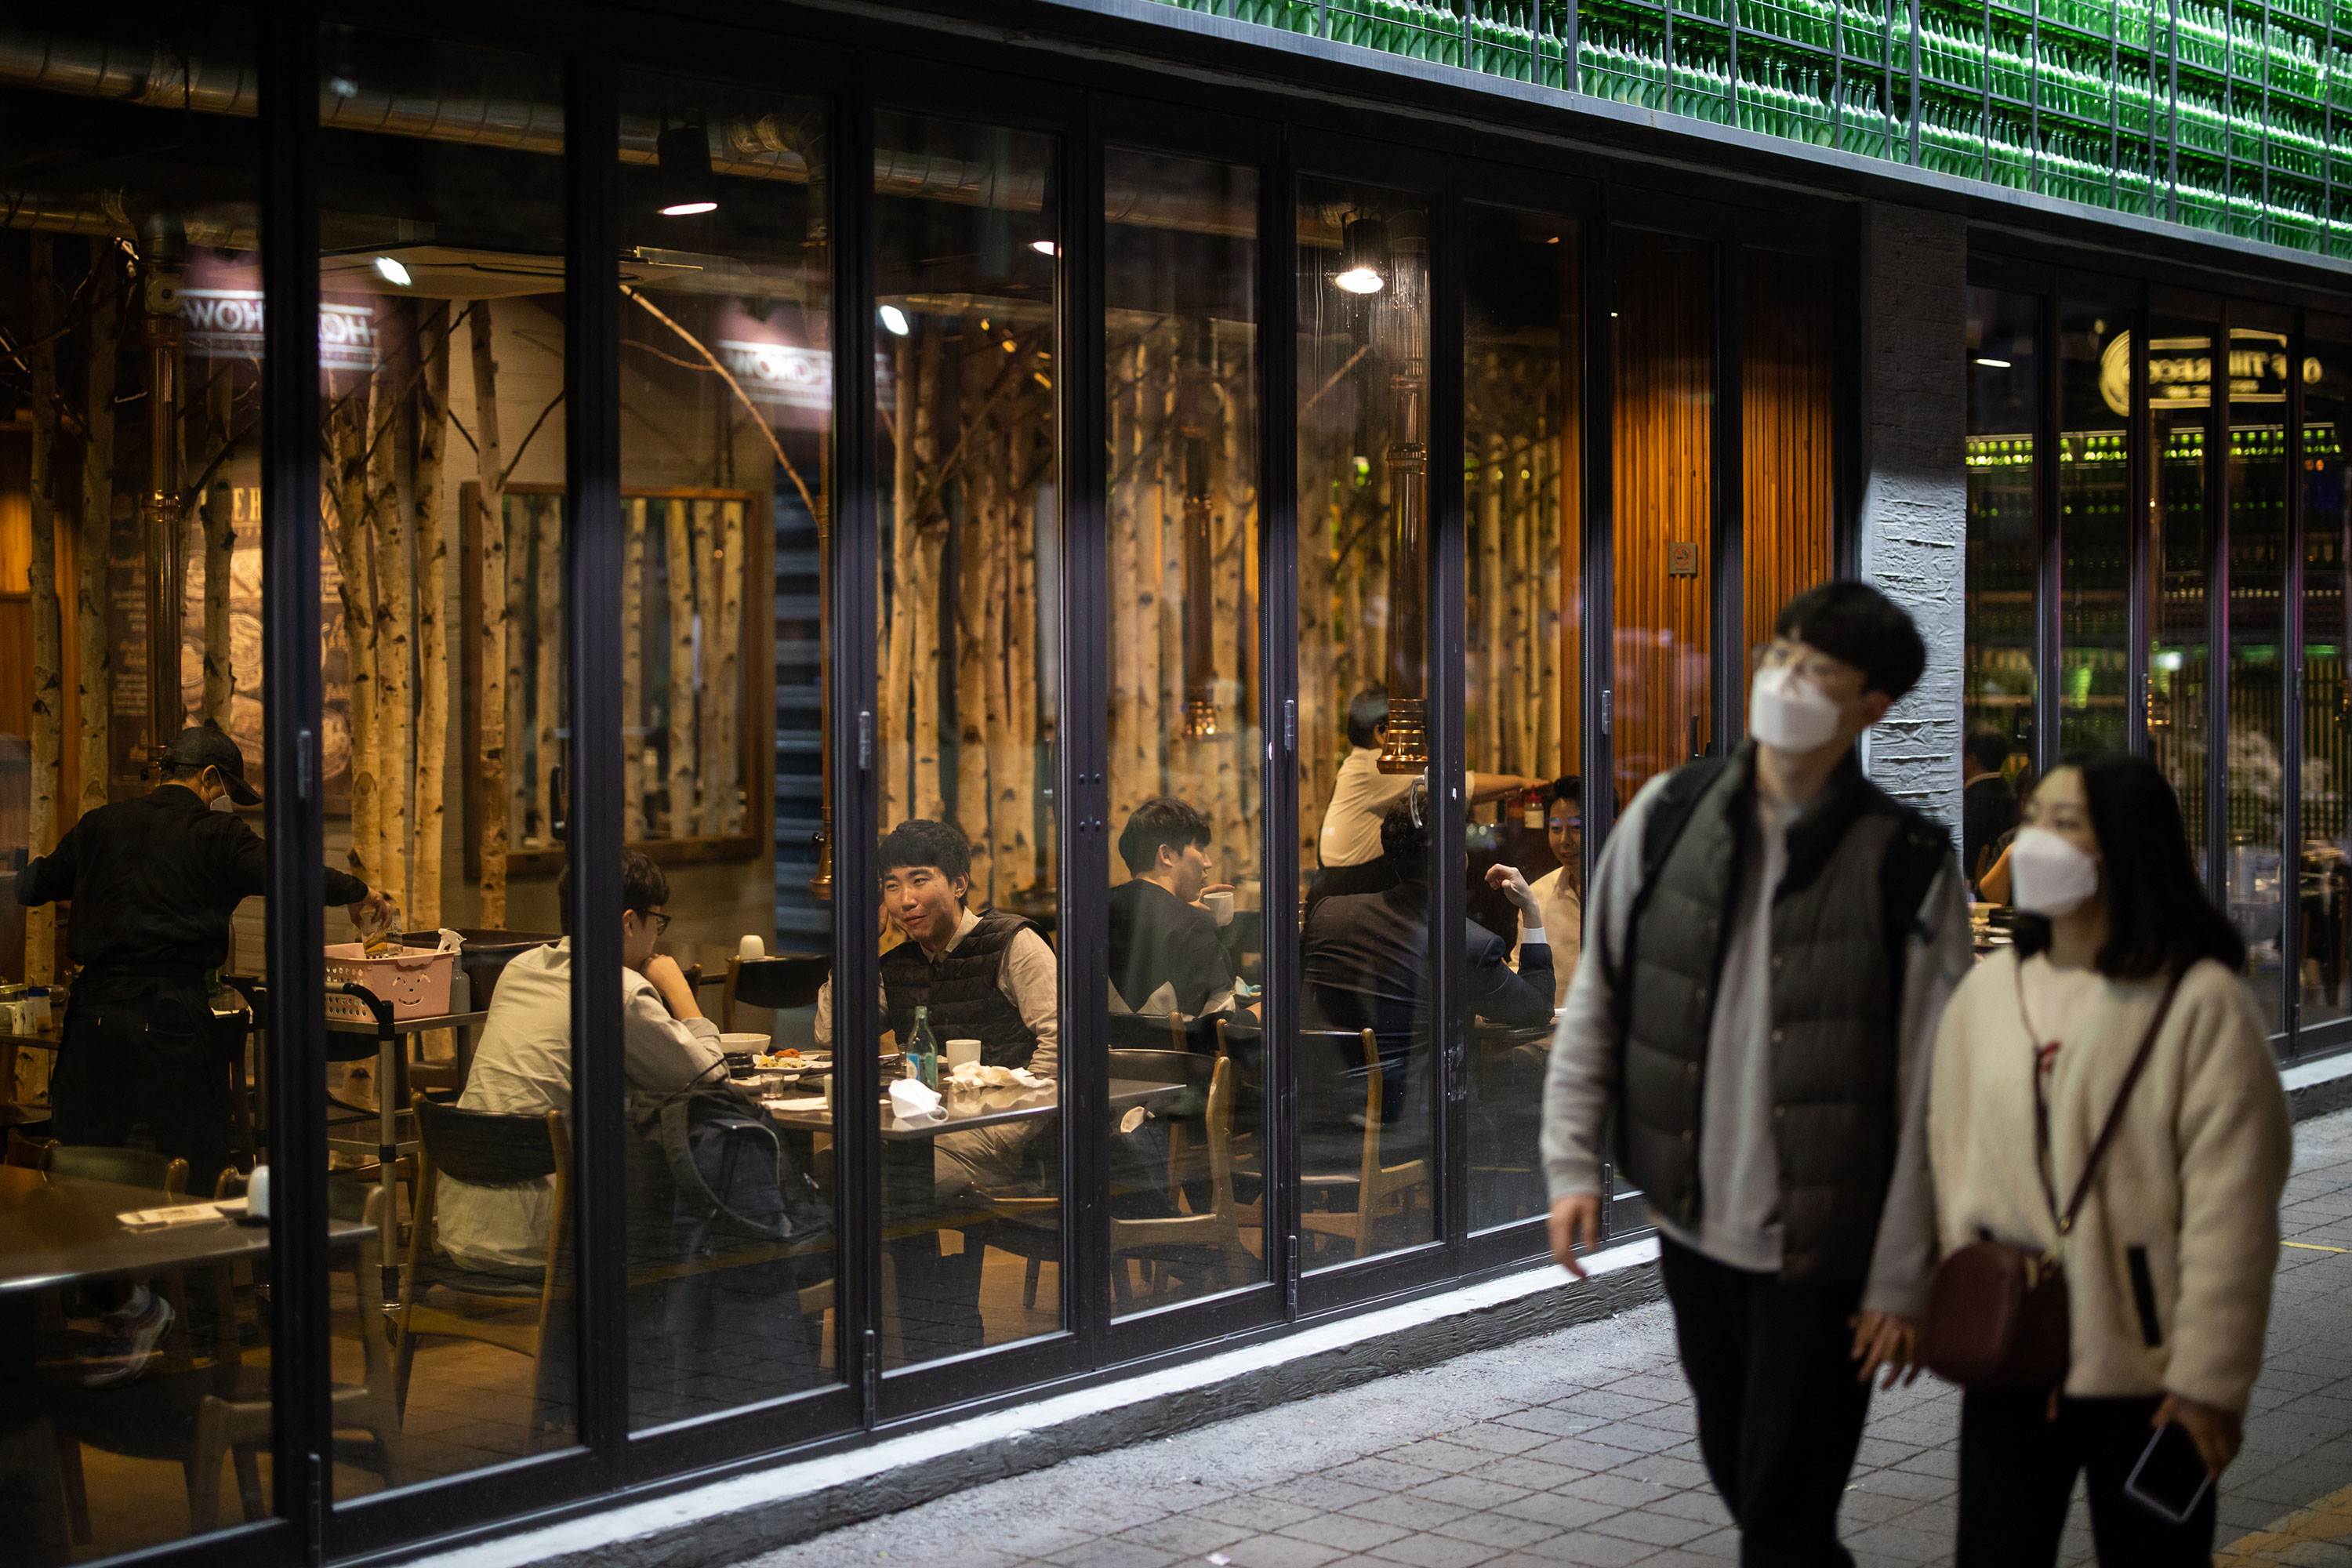 People walk past a restaurant in the Itaewon district in Seoul, South Korea, on April 24.